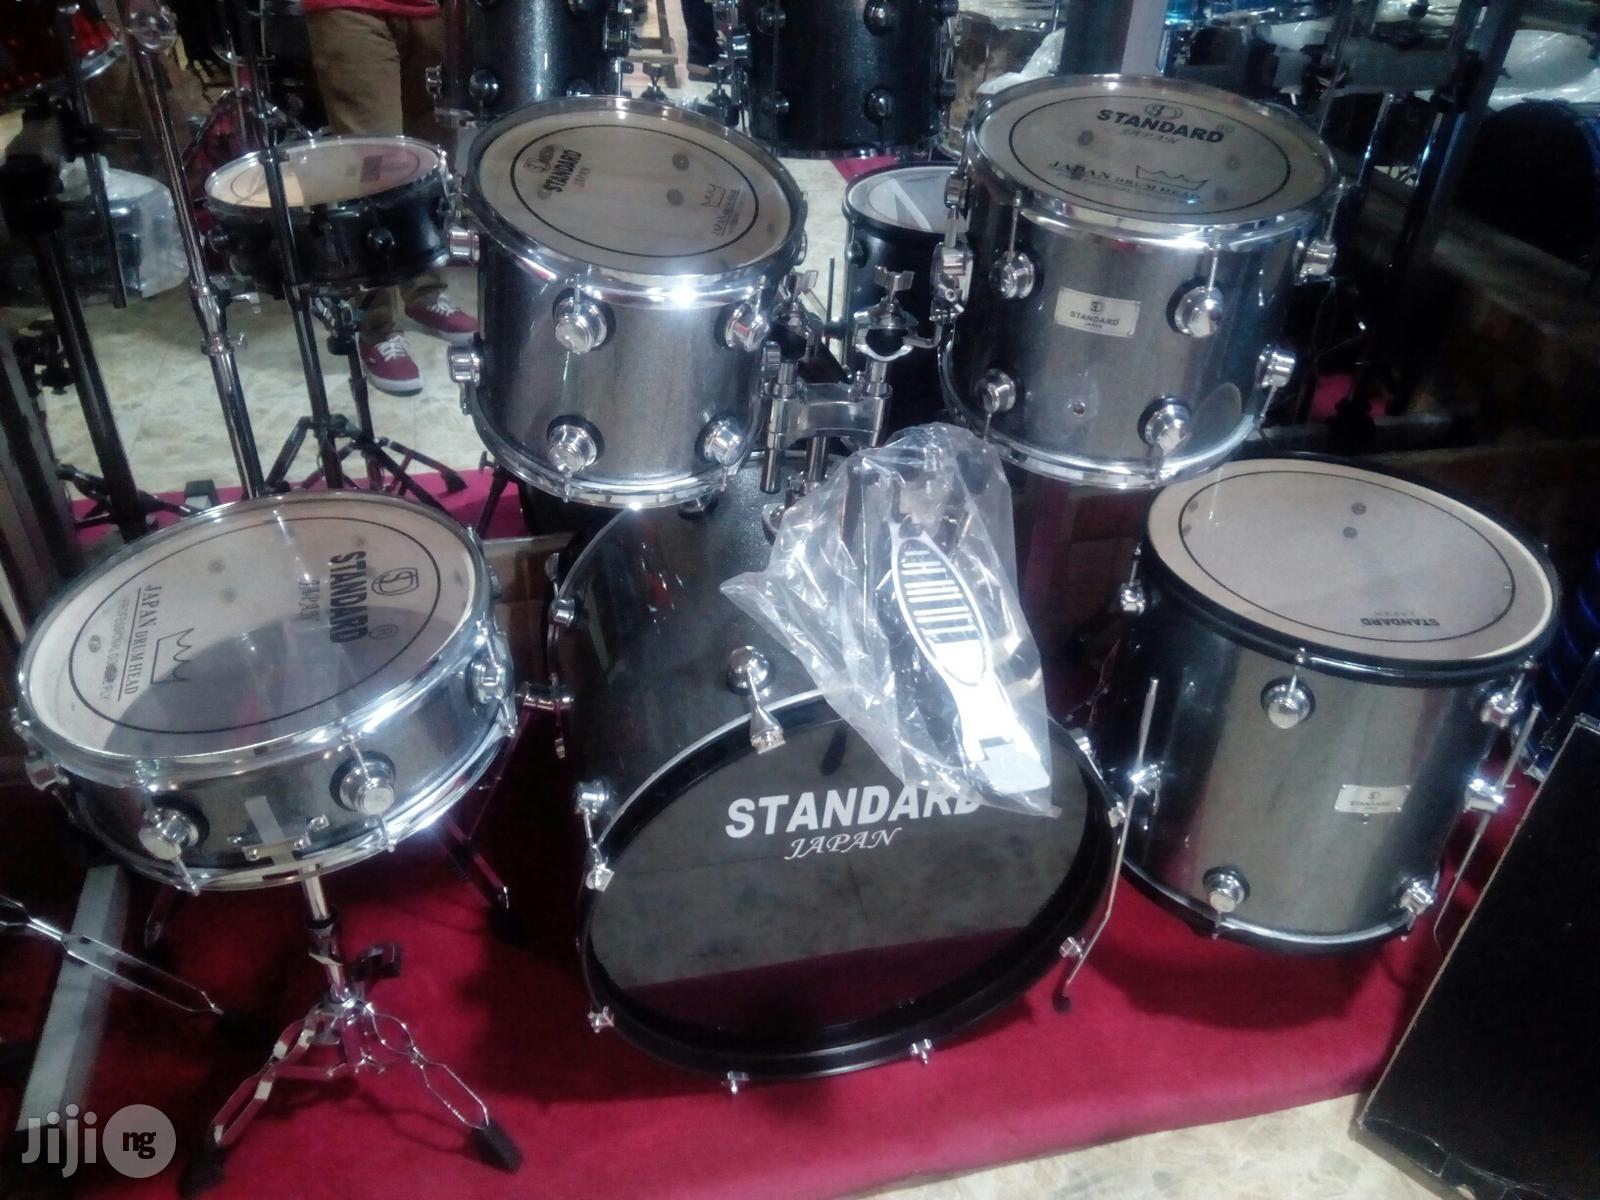 Standard 5 Piece/Set Drum | Musical Instruments & Gear for sale in Ojo, Lagos State, Nigeria